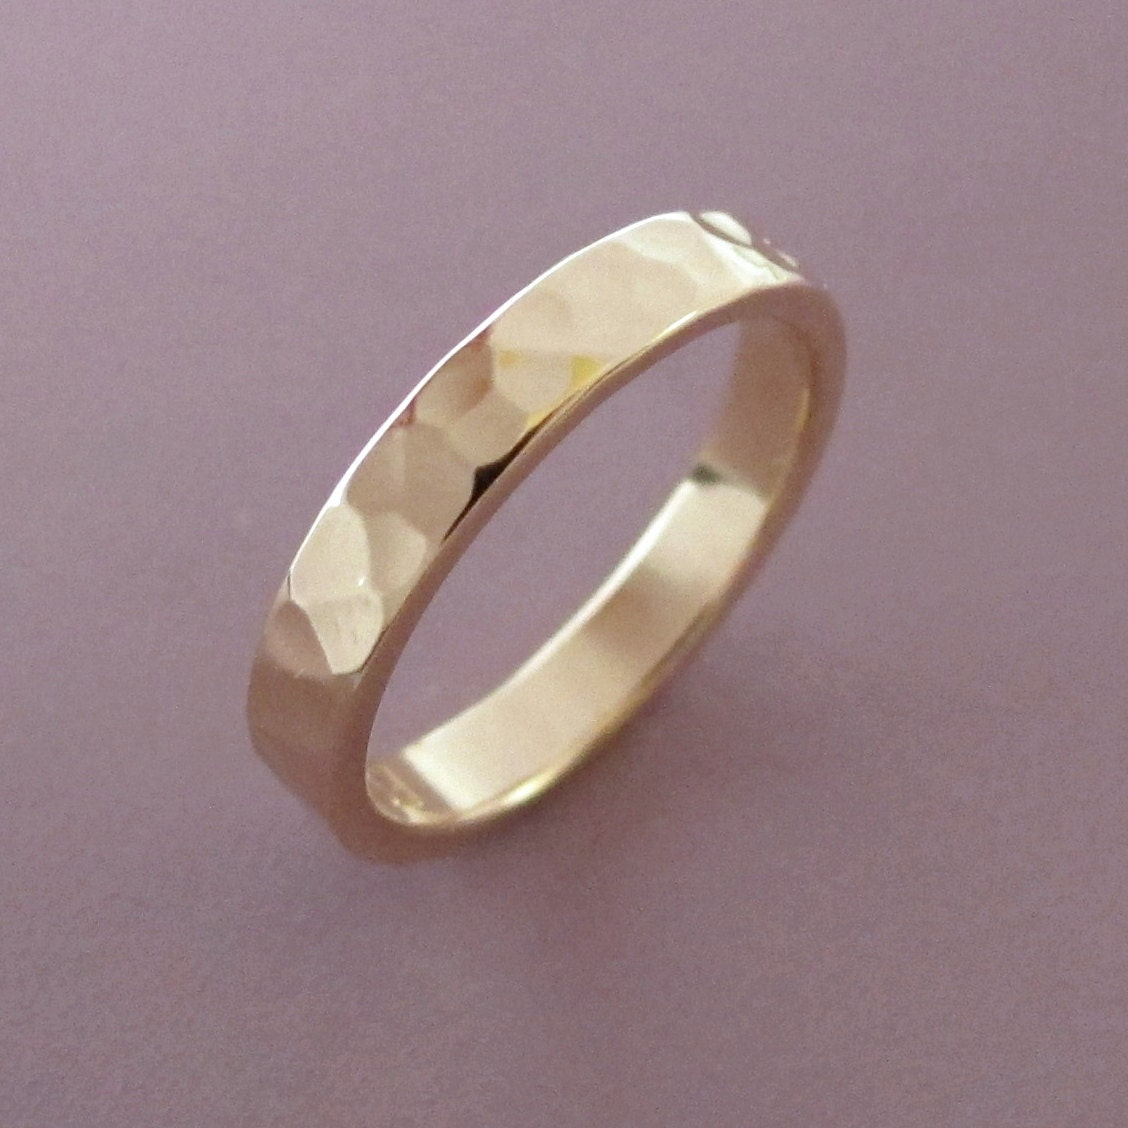 Hammered Gold Wedding Band 3 Mm 14k Recycled READY TO